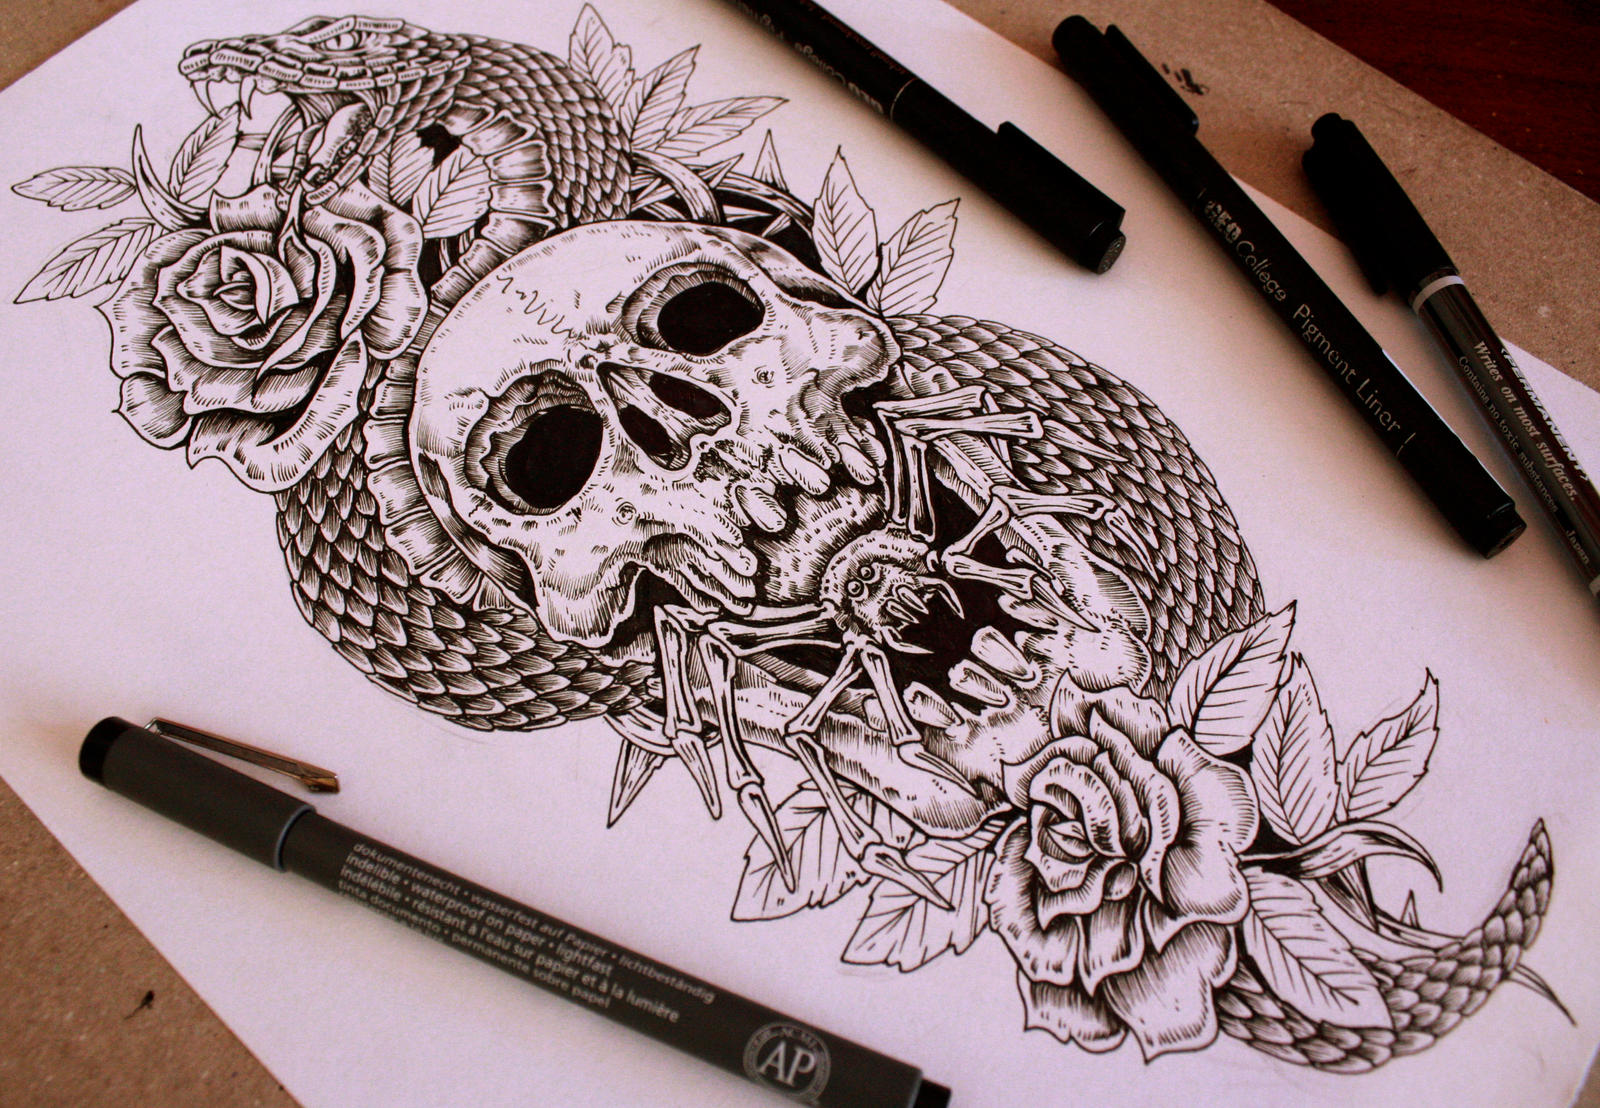 Forearm tattoo desing sold by eg thefreak on deviantart for Forearm tattoo sketches